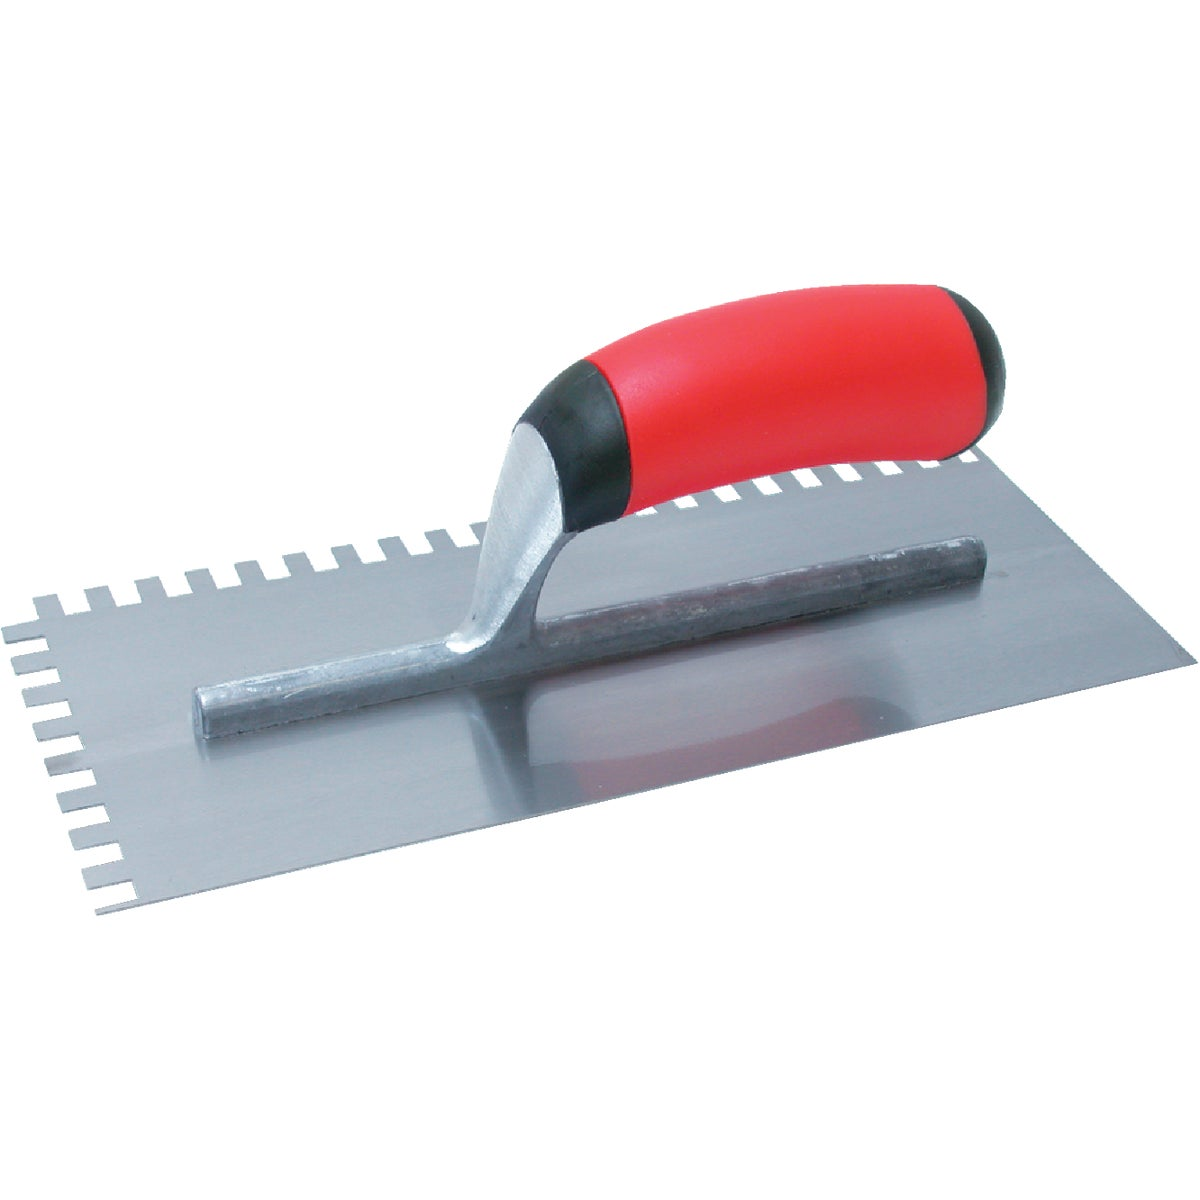 "NT672 1/4"" NOTCH TROWEL - 15672 by Marshalltown Trowel"